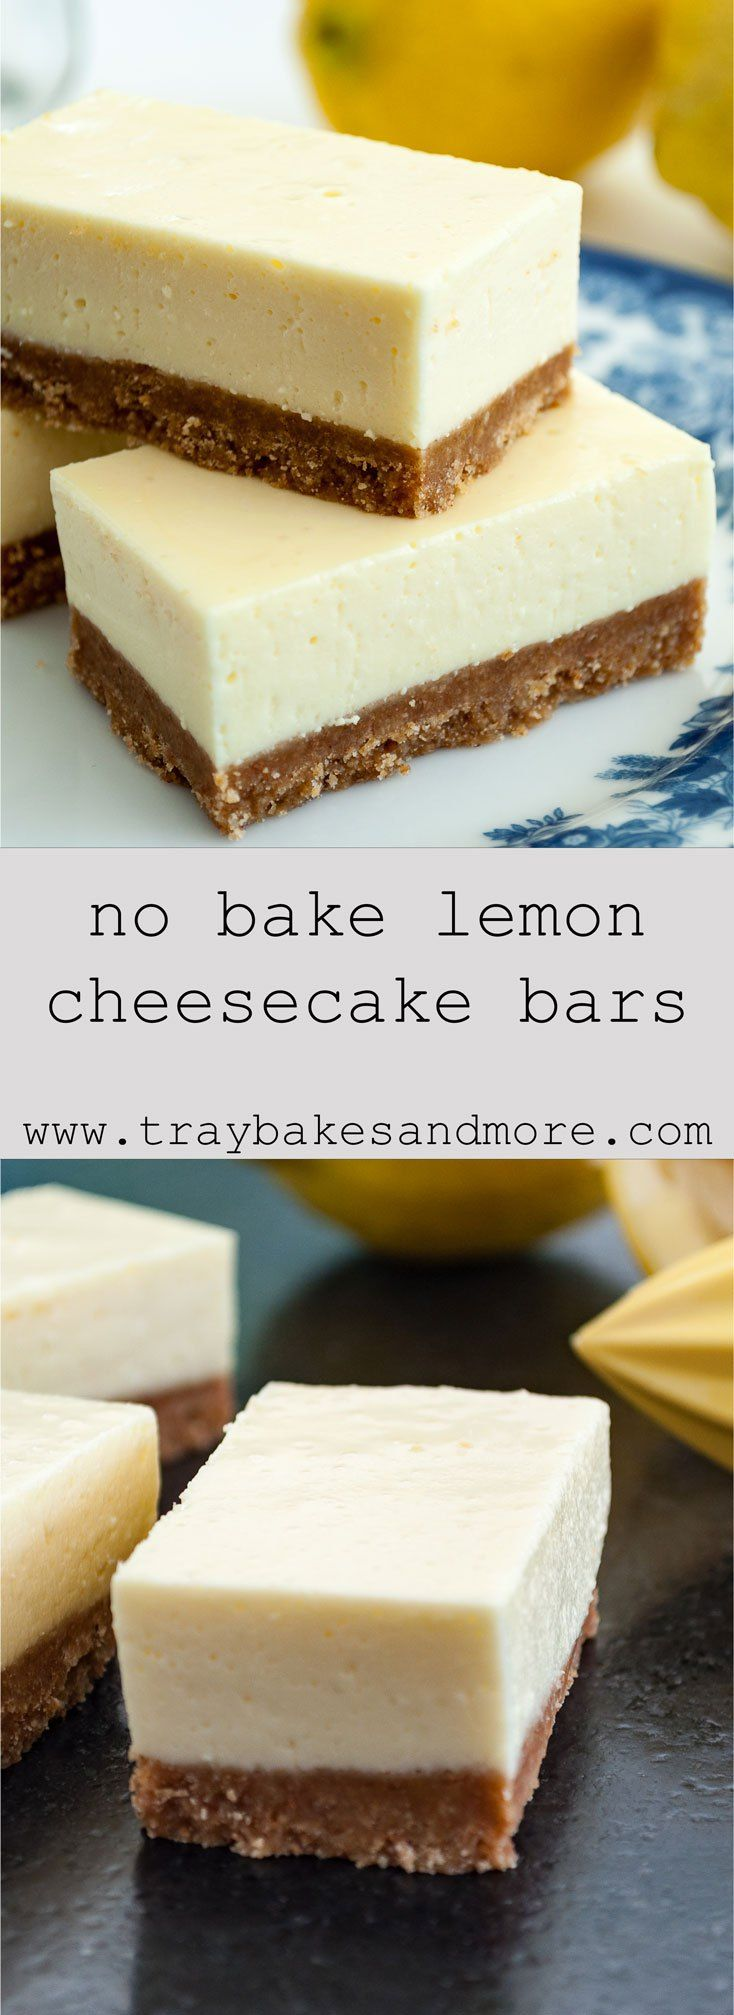 Smooth and tangy no-bake lemon cheesecake bars. A real retro recipe with cream cheese, lemon jelly and evaporated milk. -   23 lemon cheesecake recipes ideas